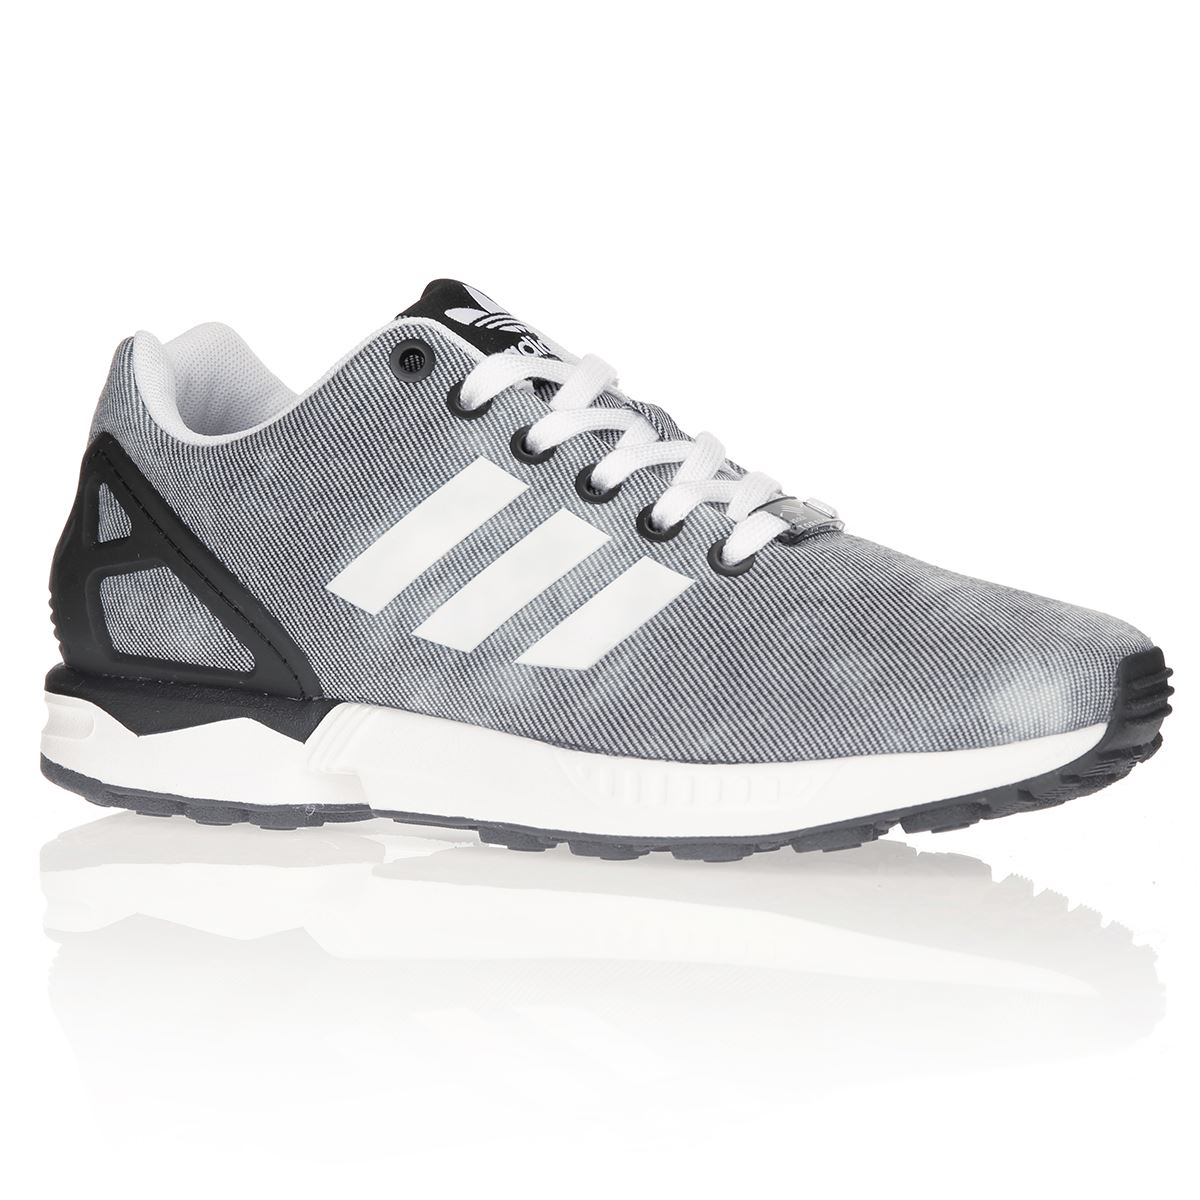 adidas zx homme chaussures